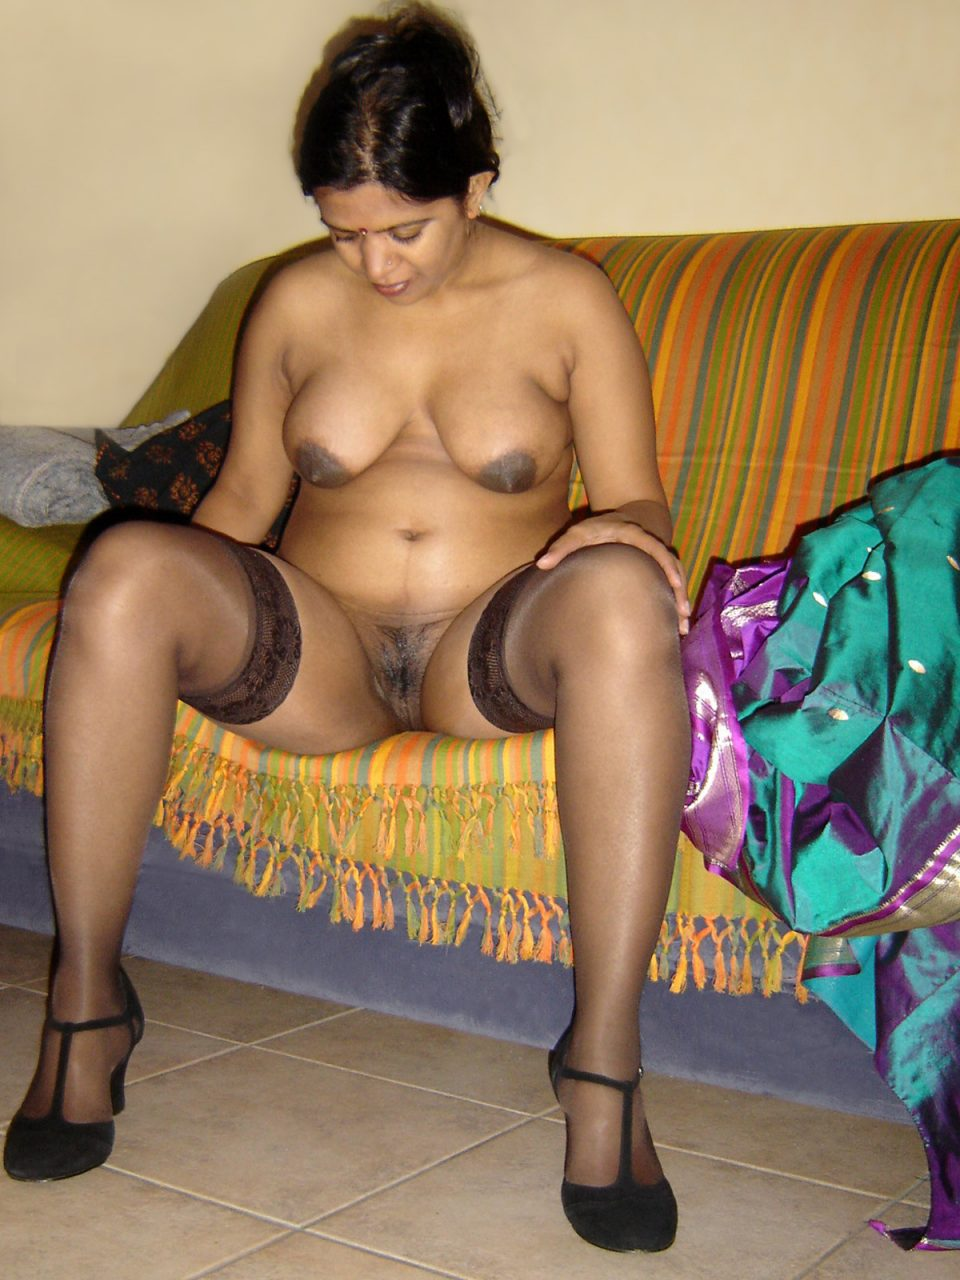 Can recommend. Sexy indian housewife naked action can not